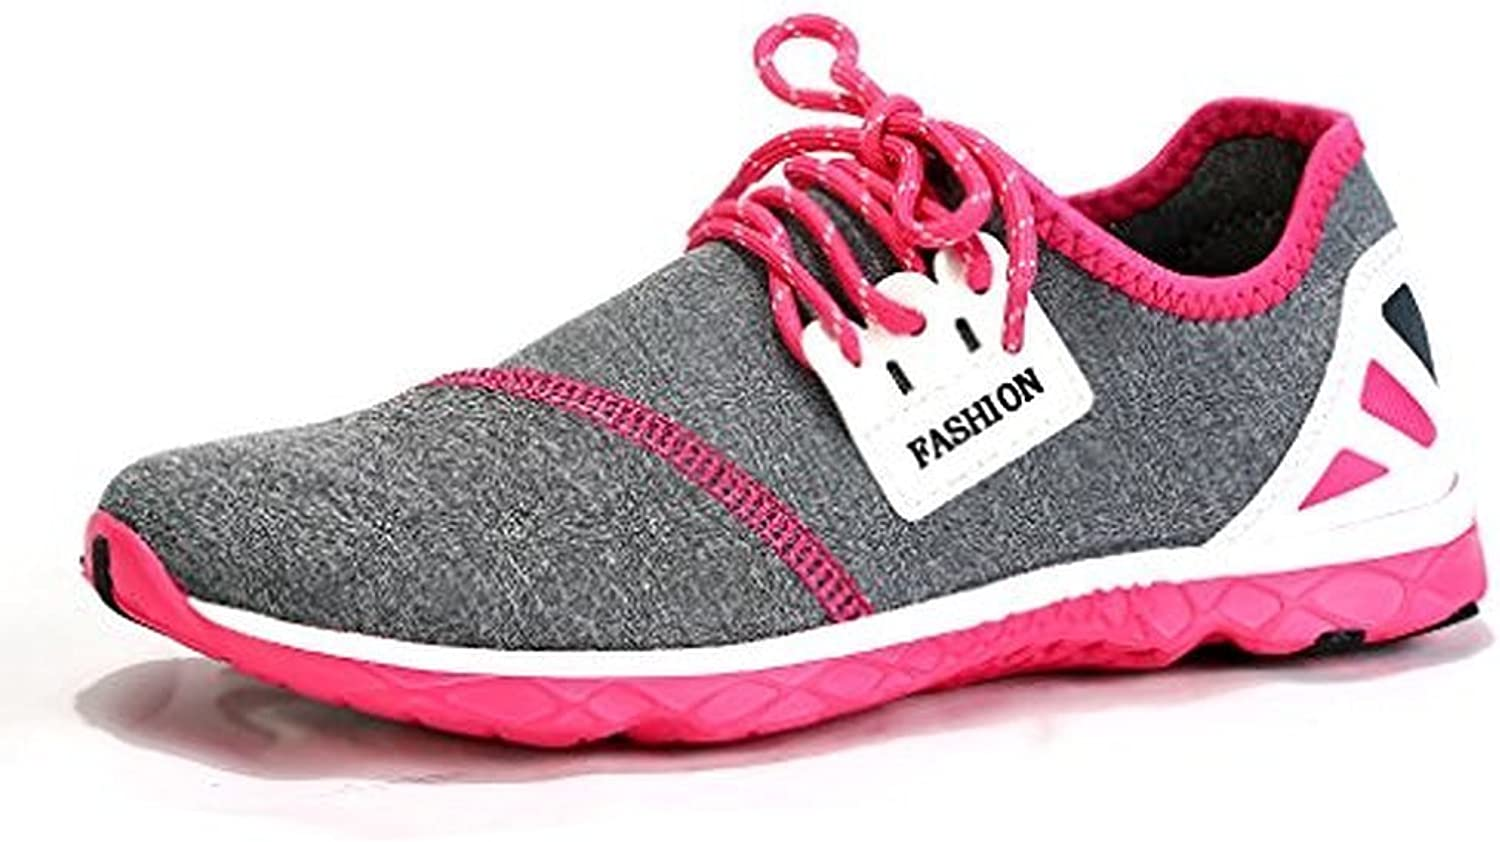 Oppicong sneakers Women's Sports Running shoes Massage Water shoes in Winter Comfortable